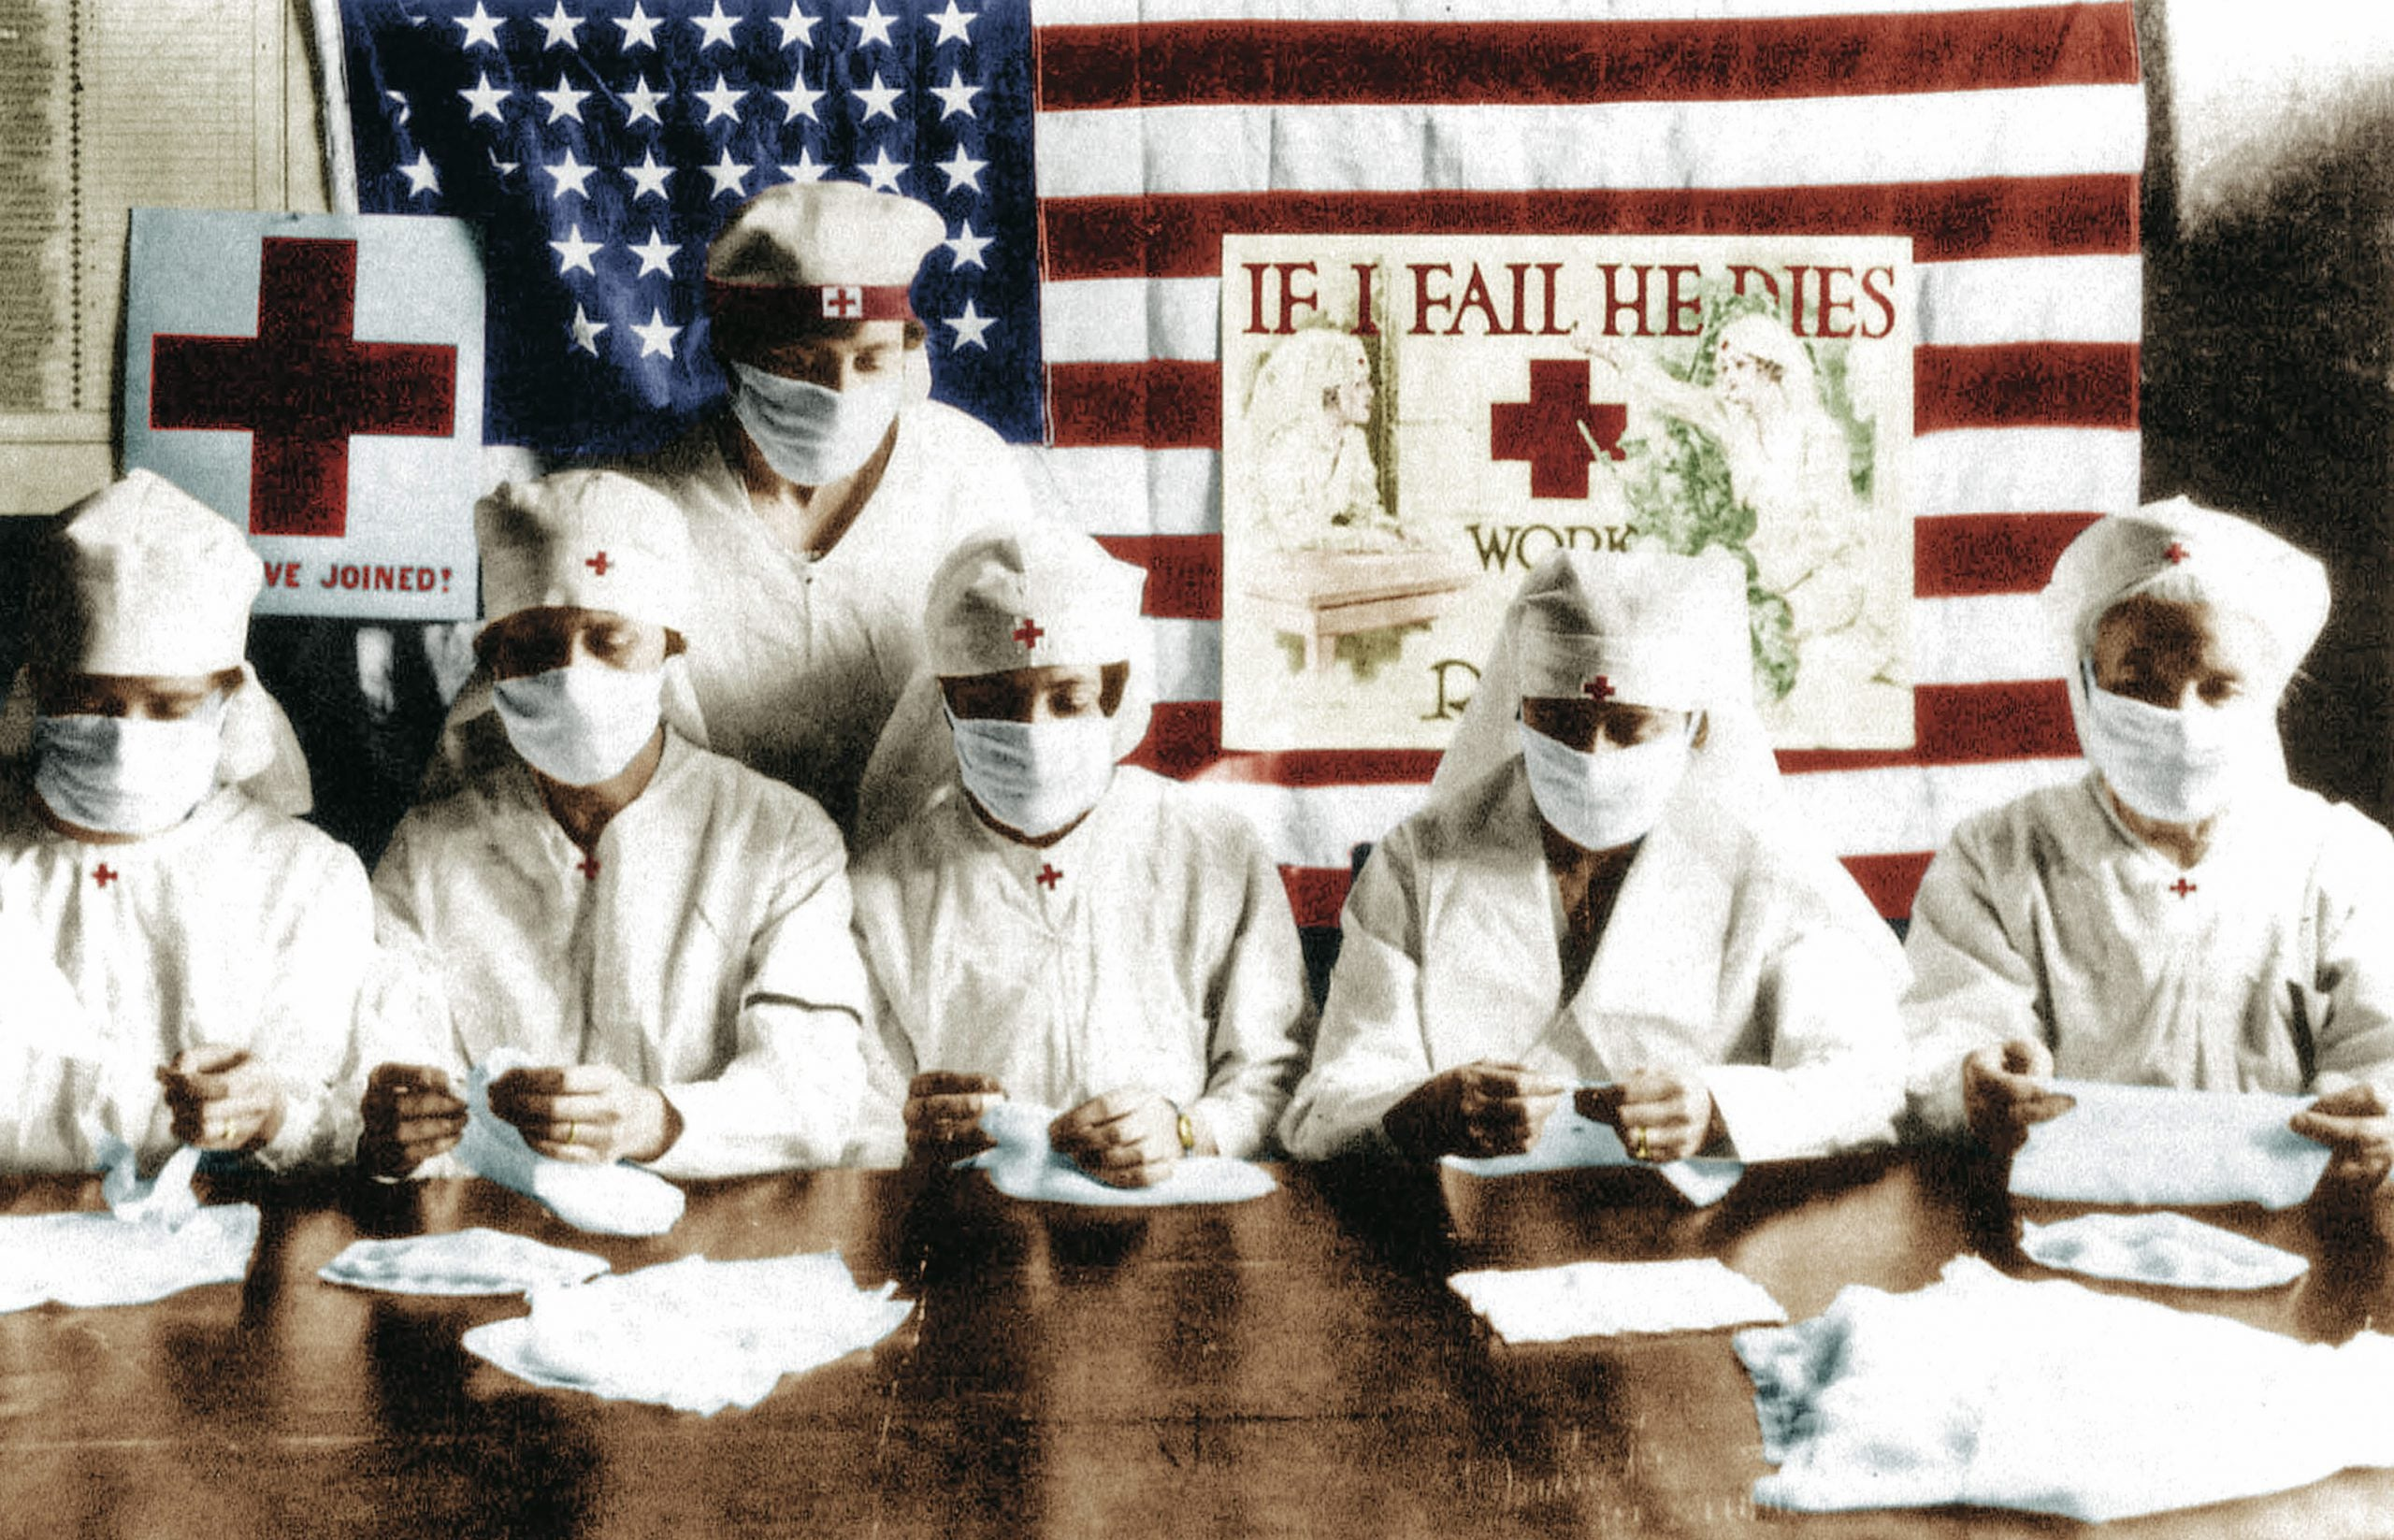 What the Spanish Flu pandemic teaches us today